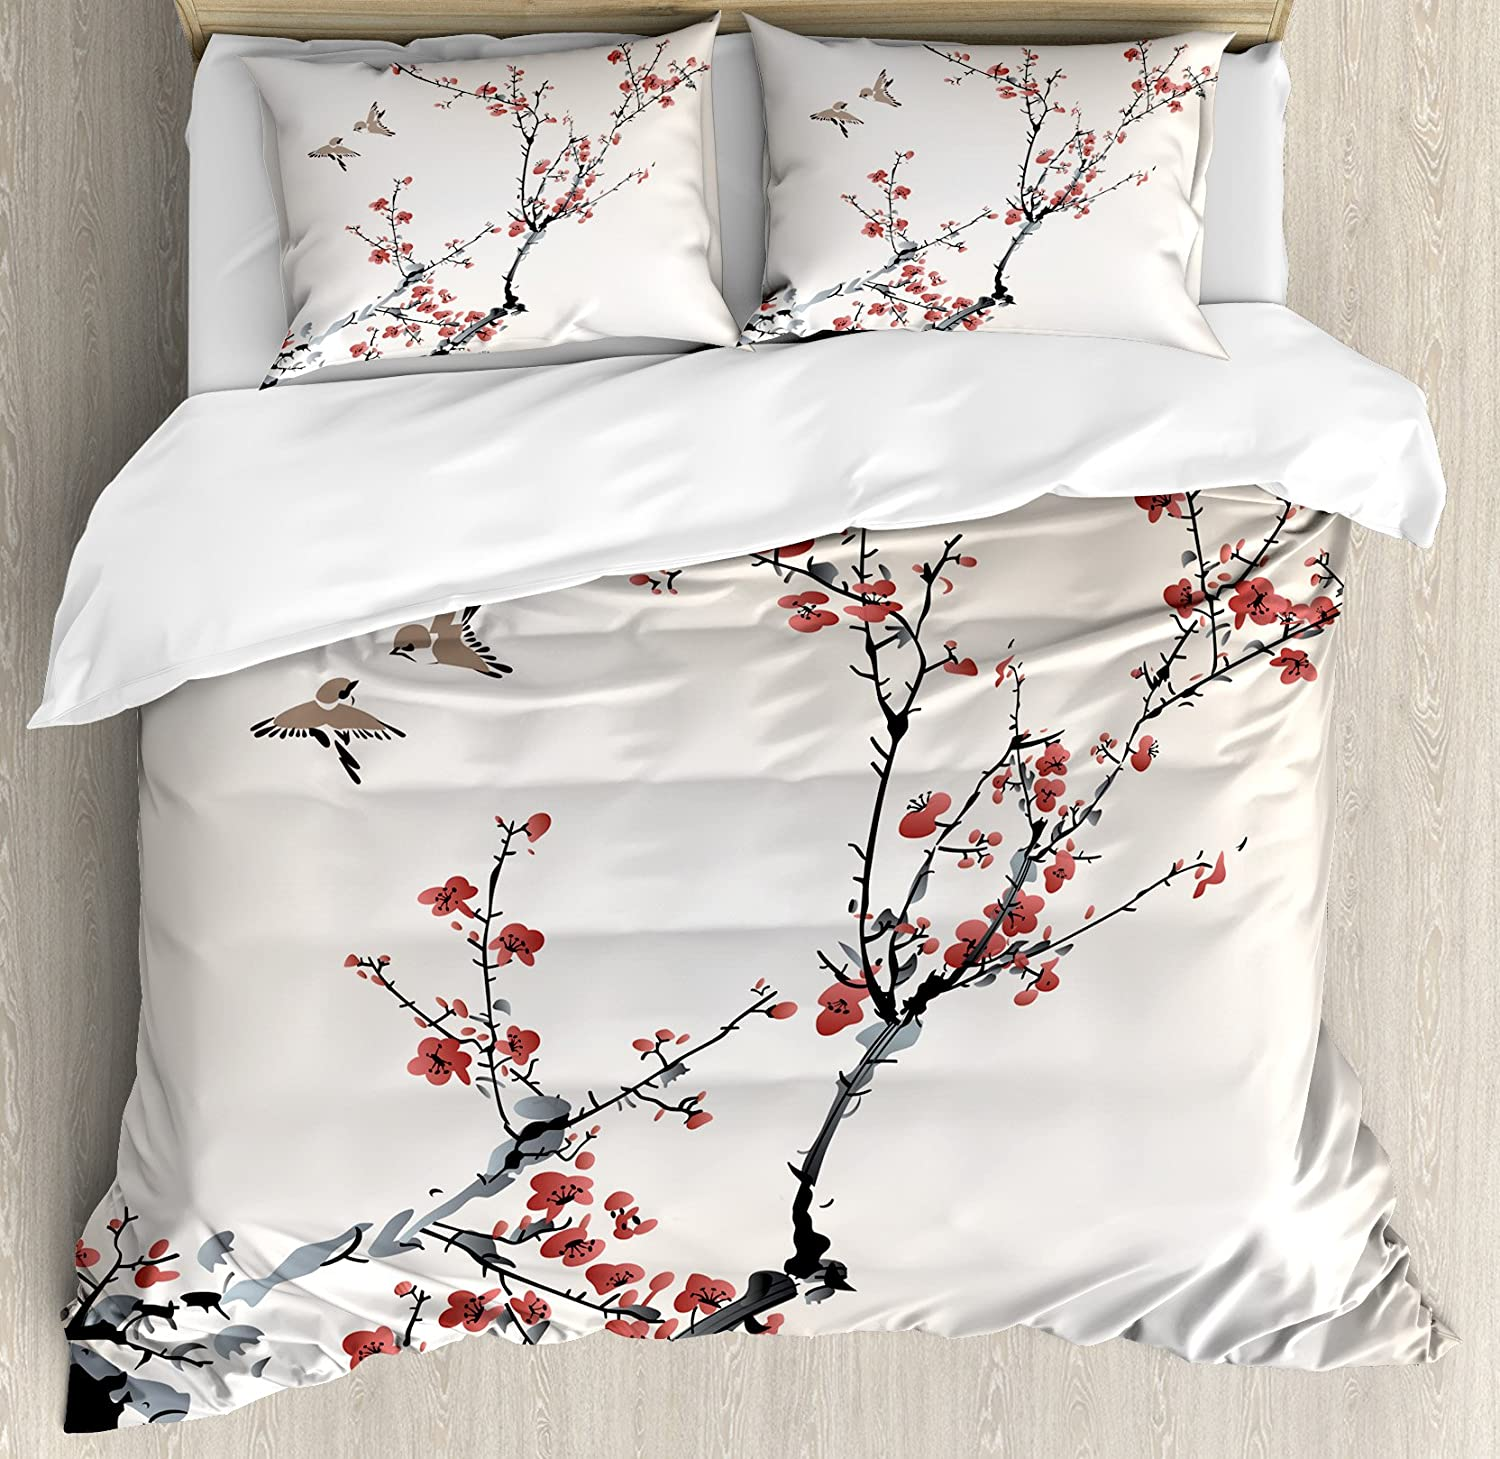 Ambesonne Nature Duvet Cover Set, Cherry Branches Flowers Buds and Birds Style Artwork with Painting Effect, Decorative 3 Piece Bedding Set with 2 Pillow Shams, King Size, Burgundy Black